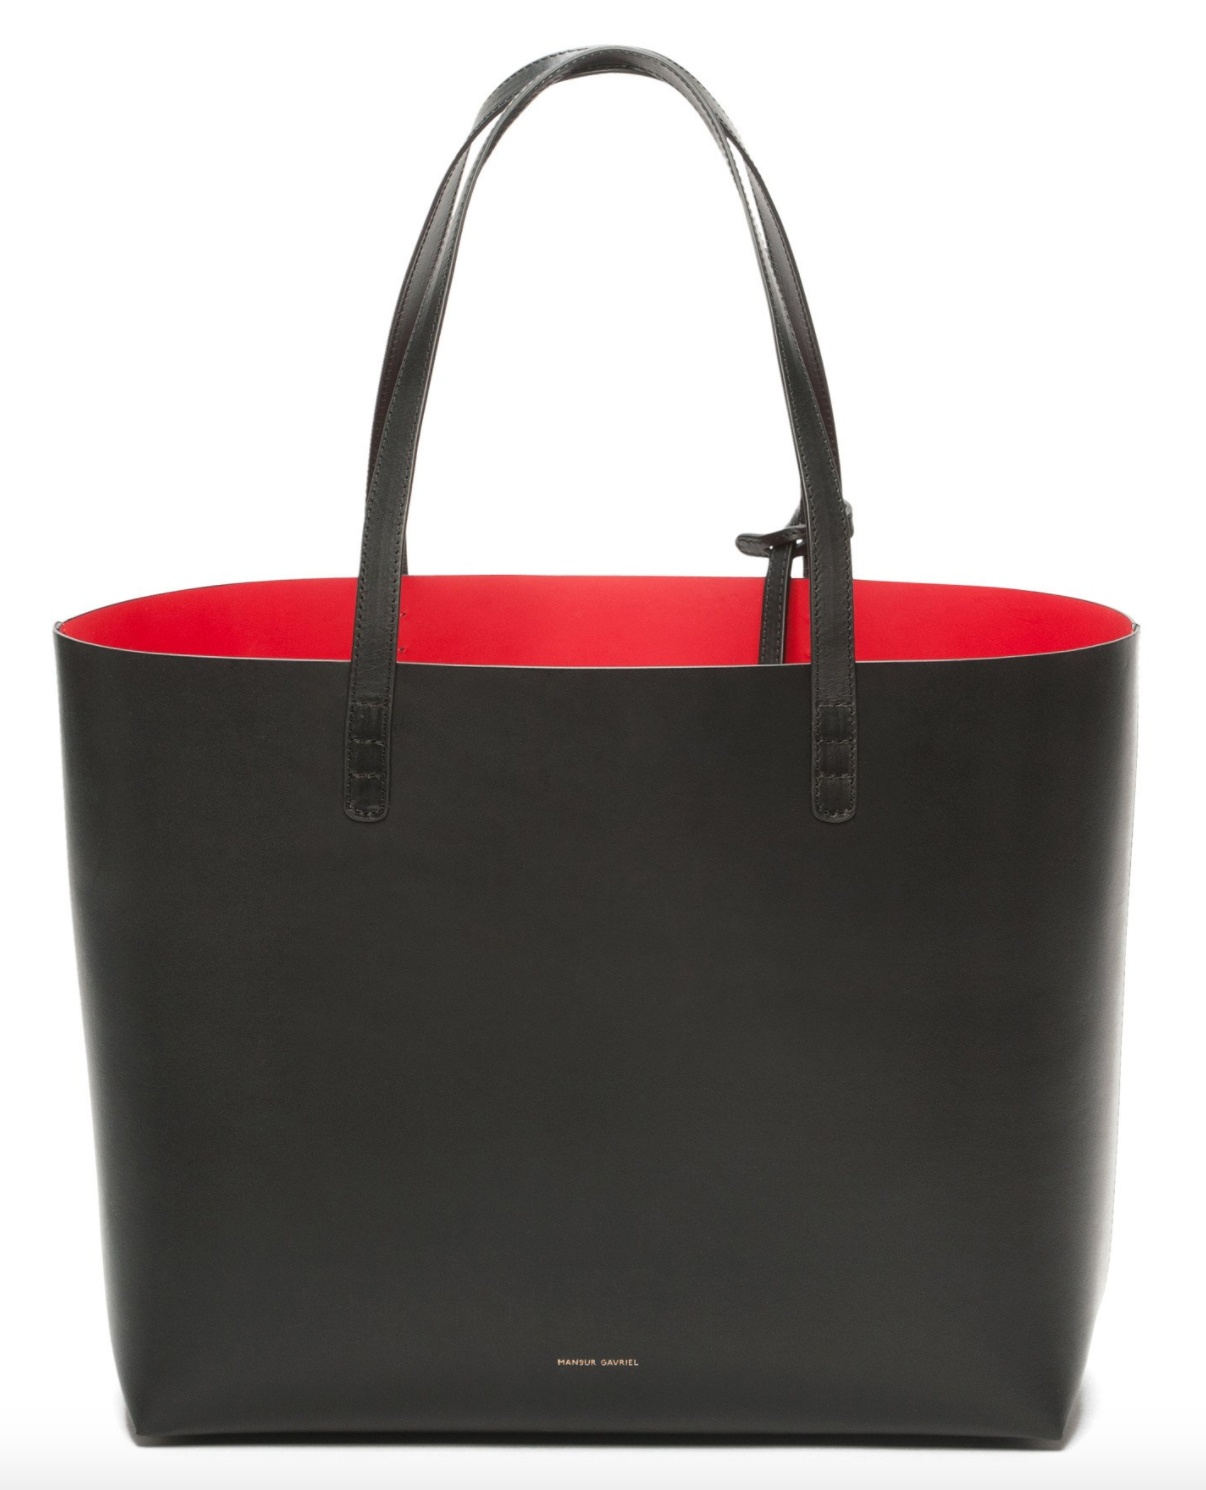 Red-lined Top Handle leather bag Mansur Gavriel TVuh0ju